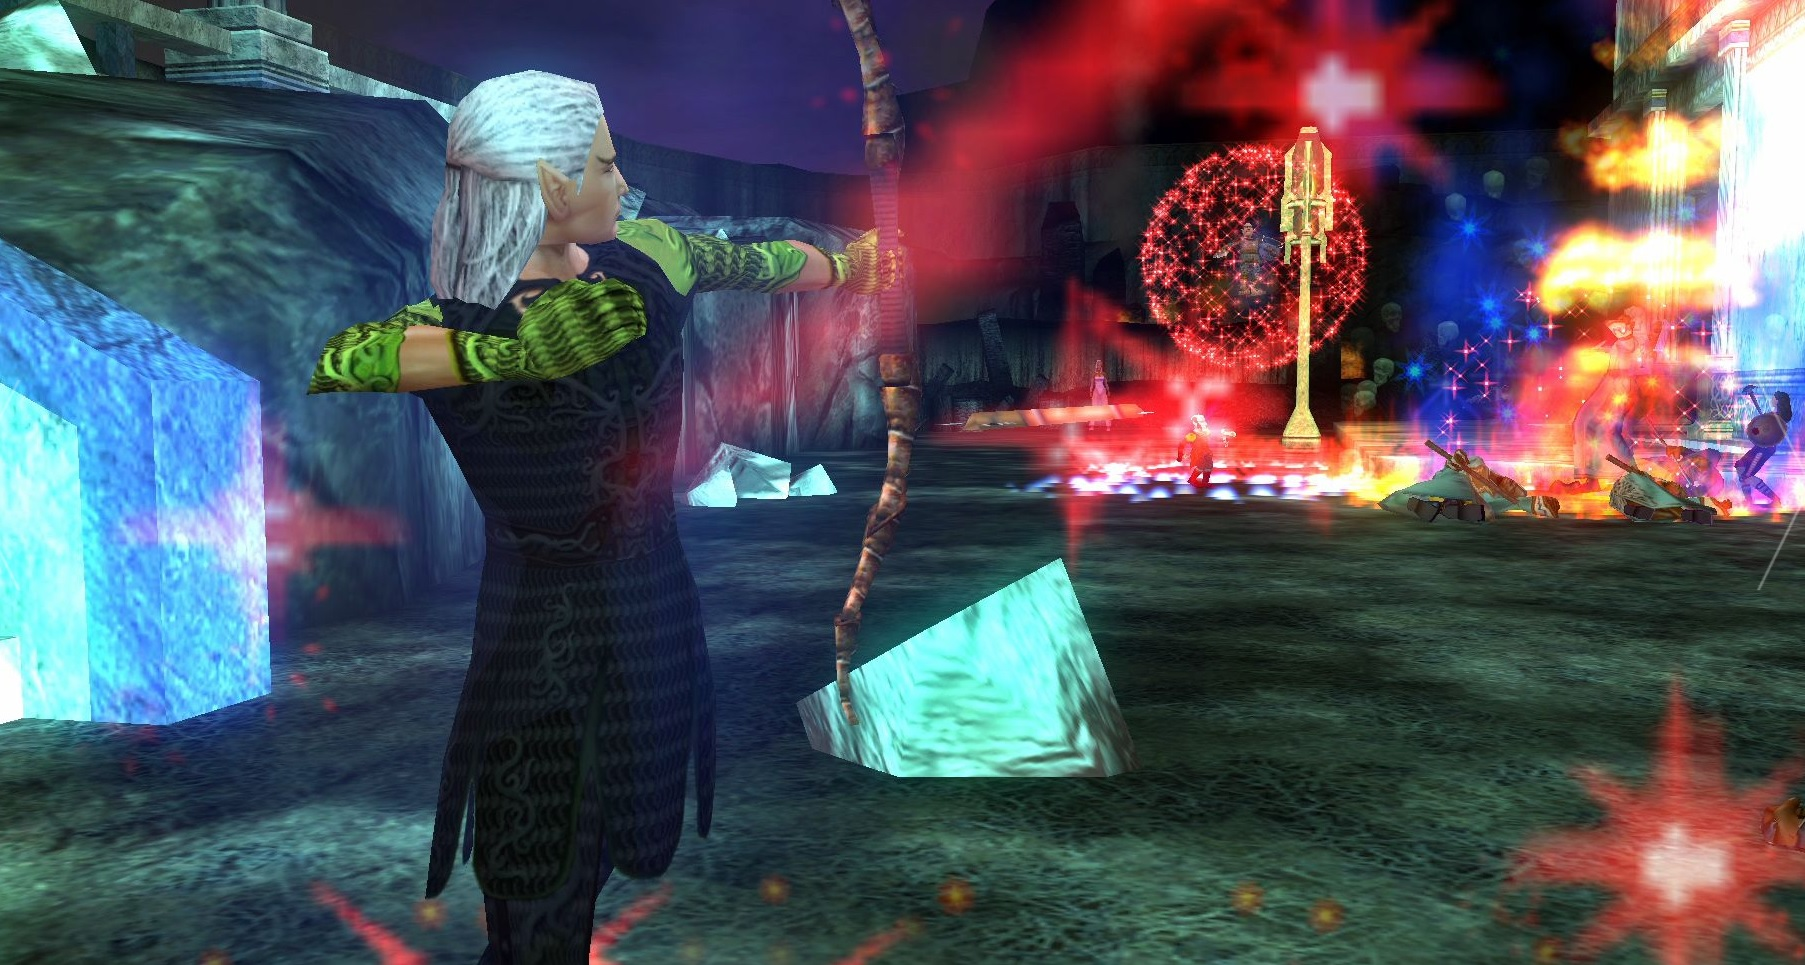 EverQuest is getting a new land and raids to celebrate its 20th